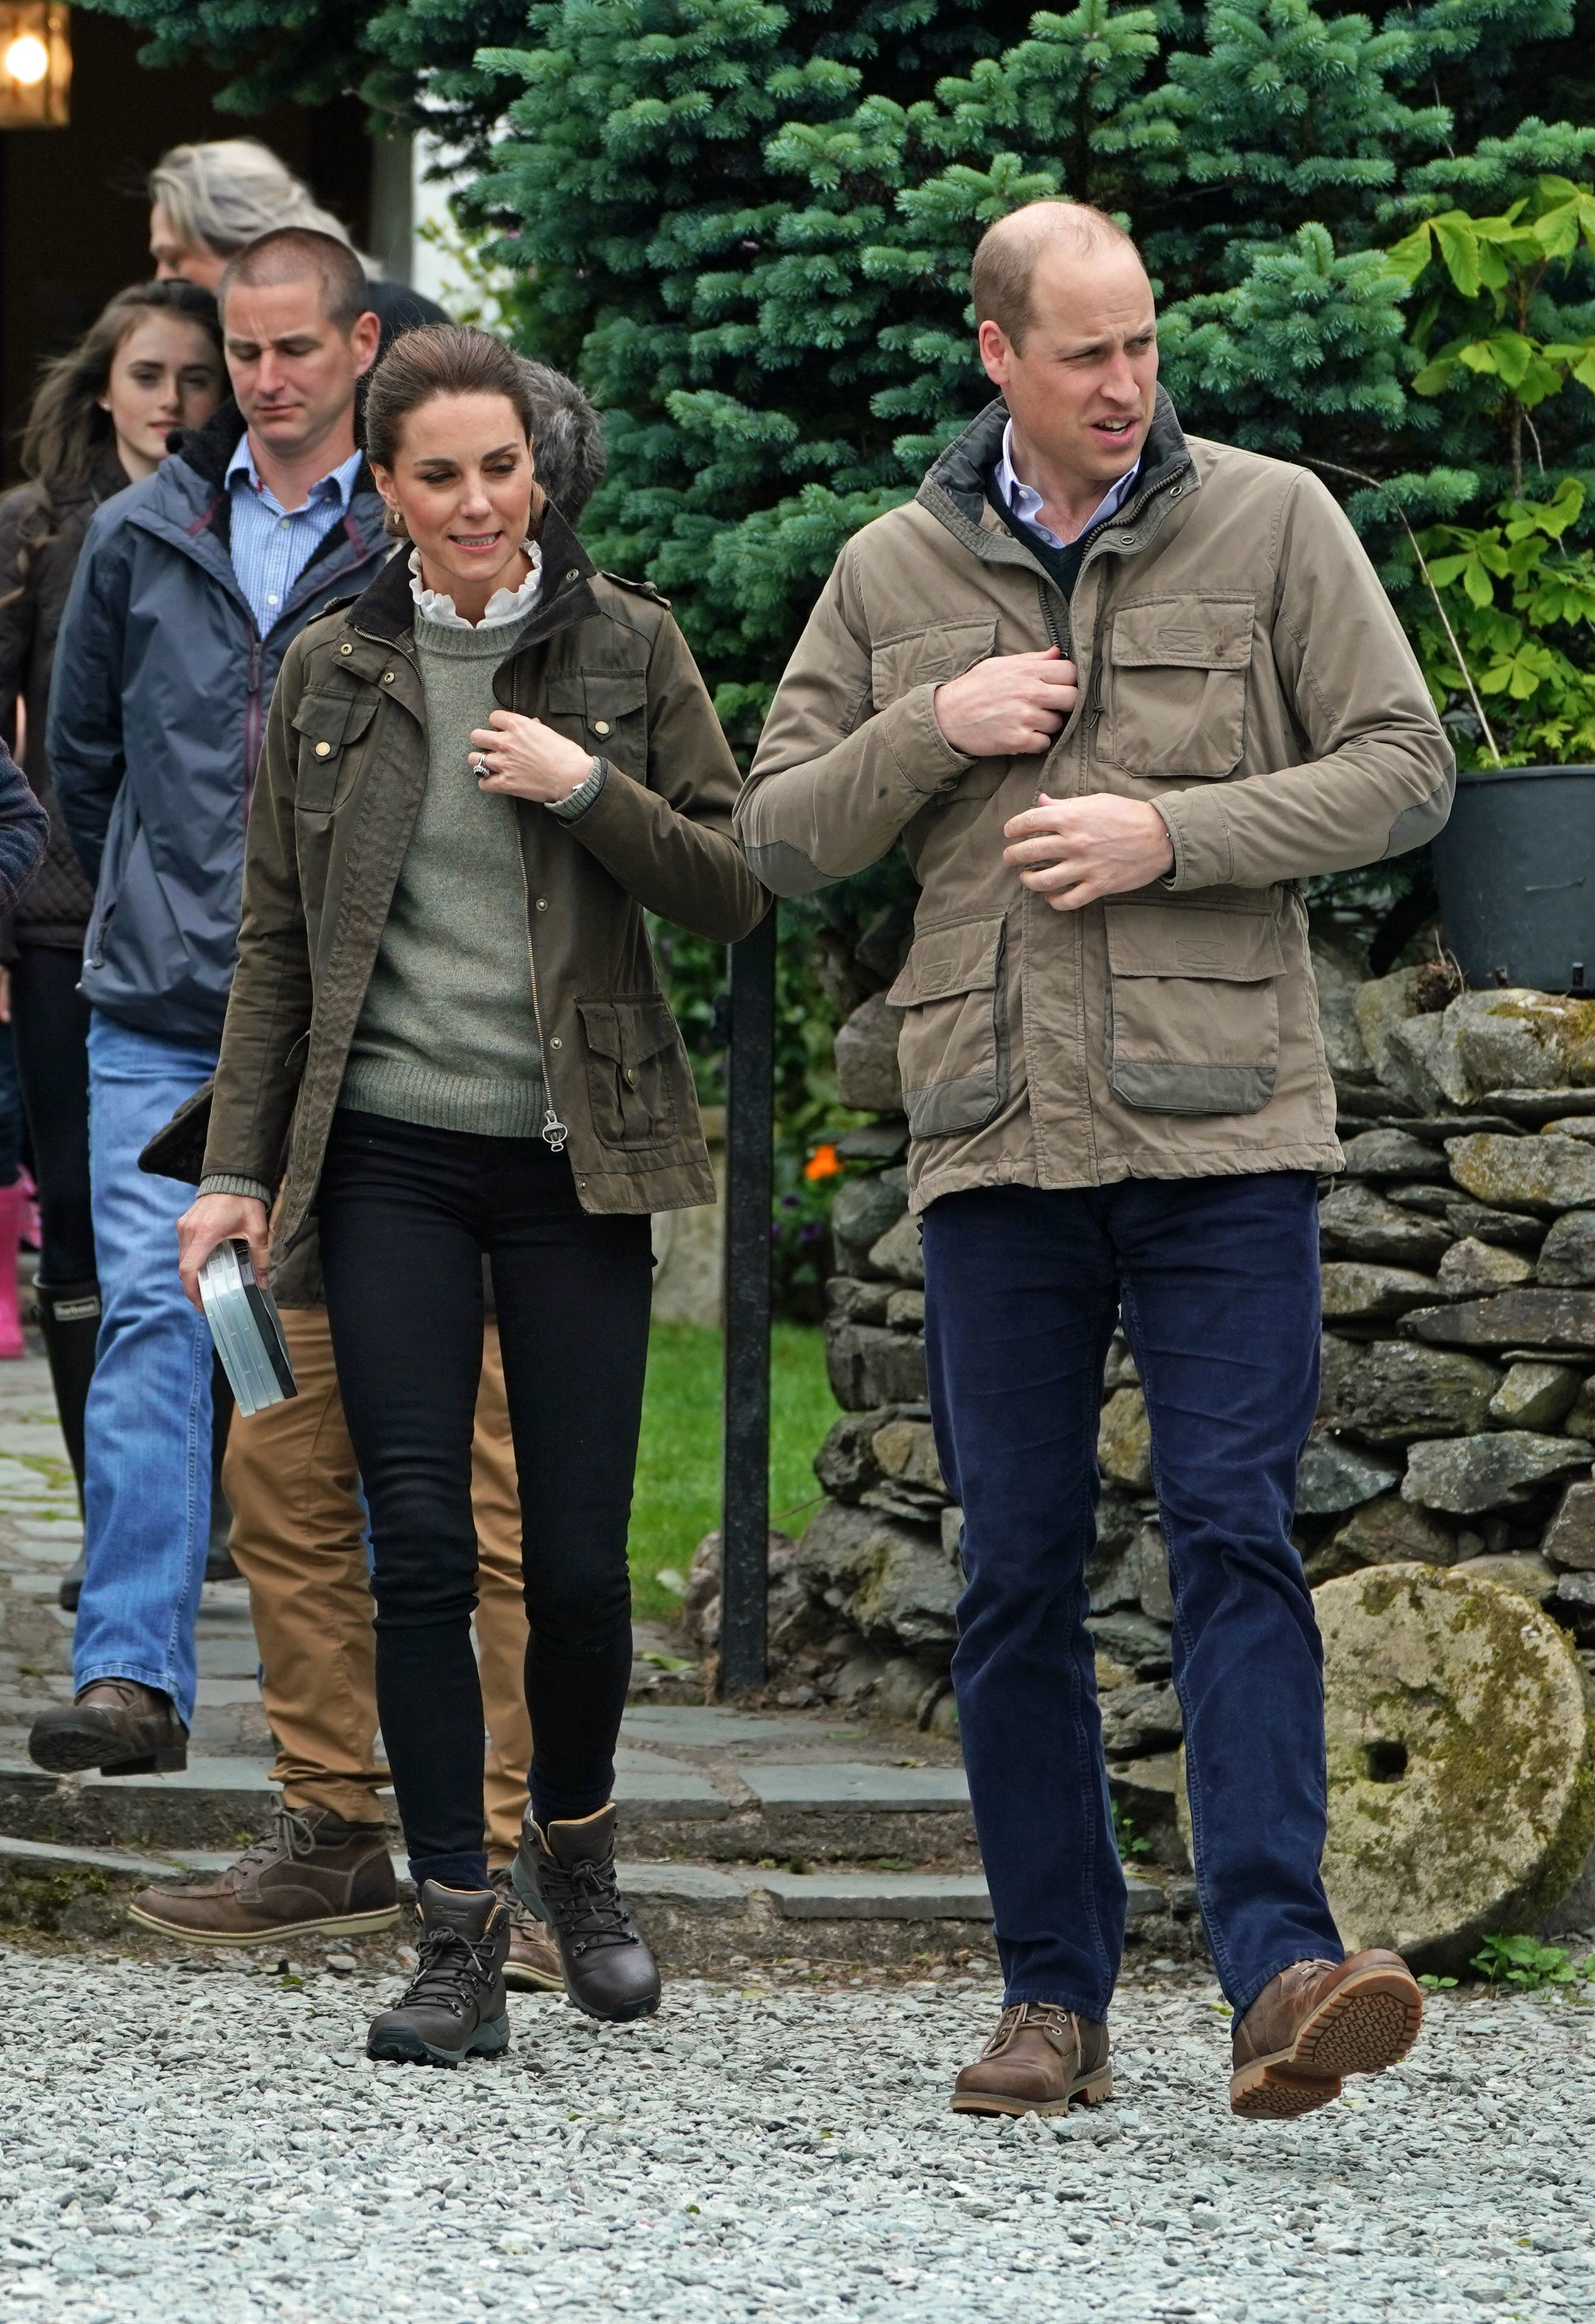 Duchess Kate and Prince William appear during a visit to Deepdale Hall Farm, a traditional fell sheep farm in Patterdale, Cumbria, England, on June 11, 2019.